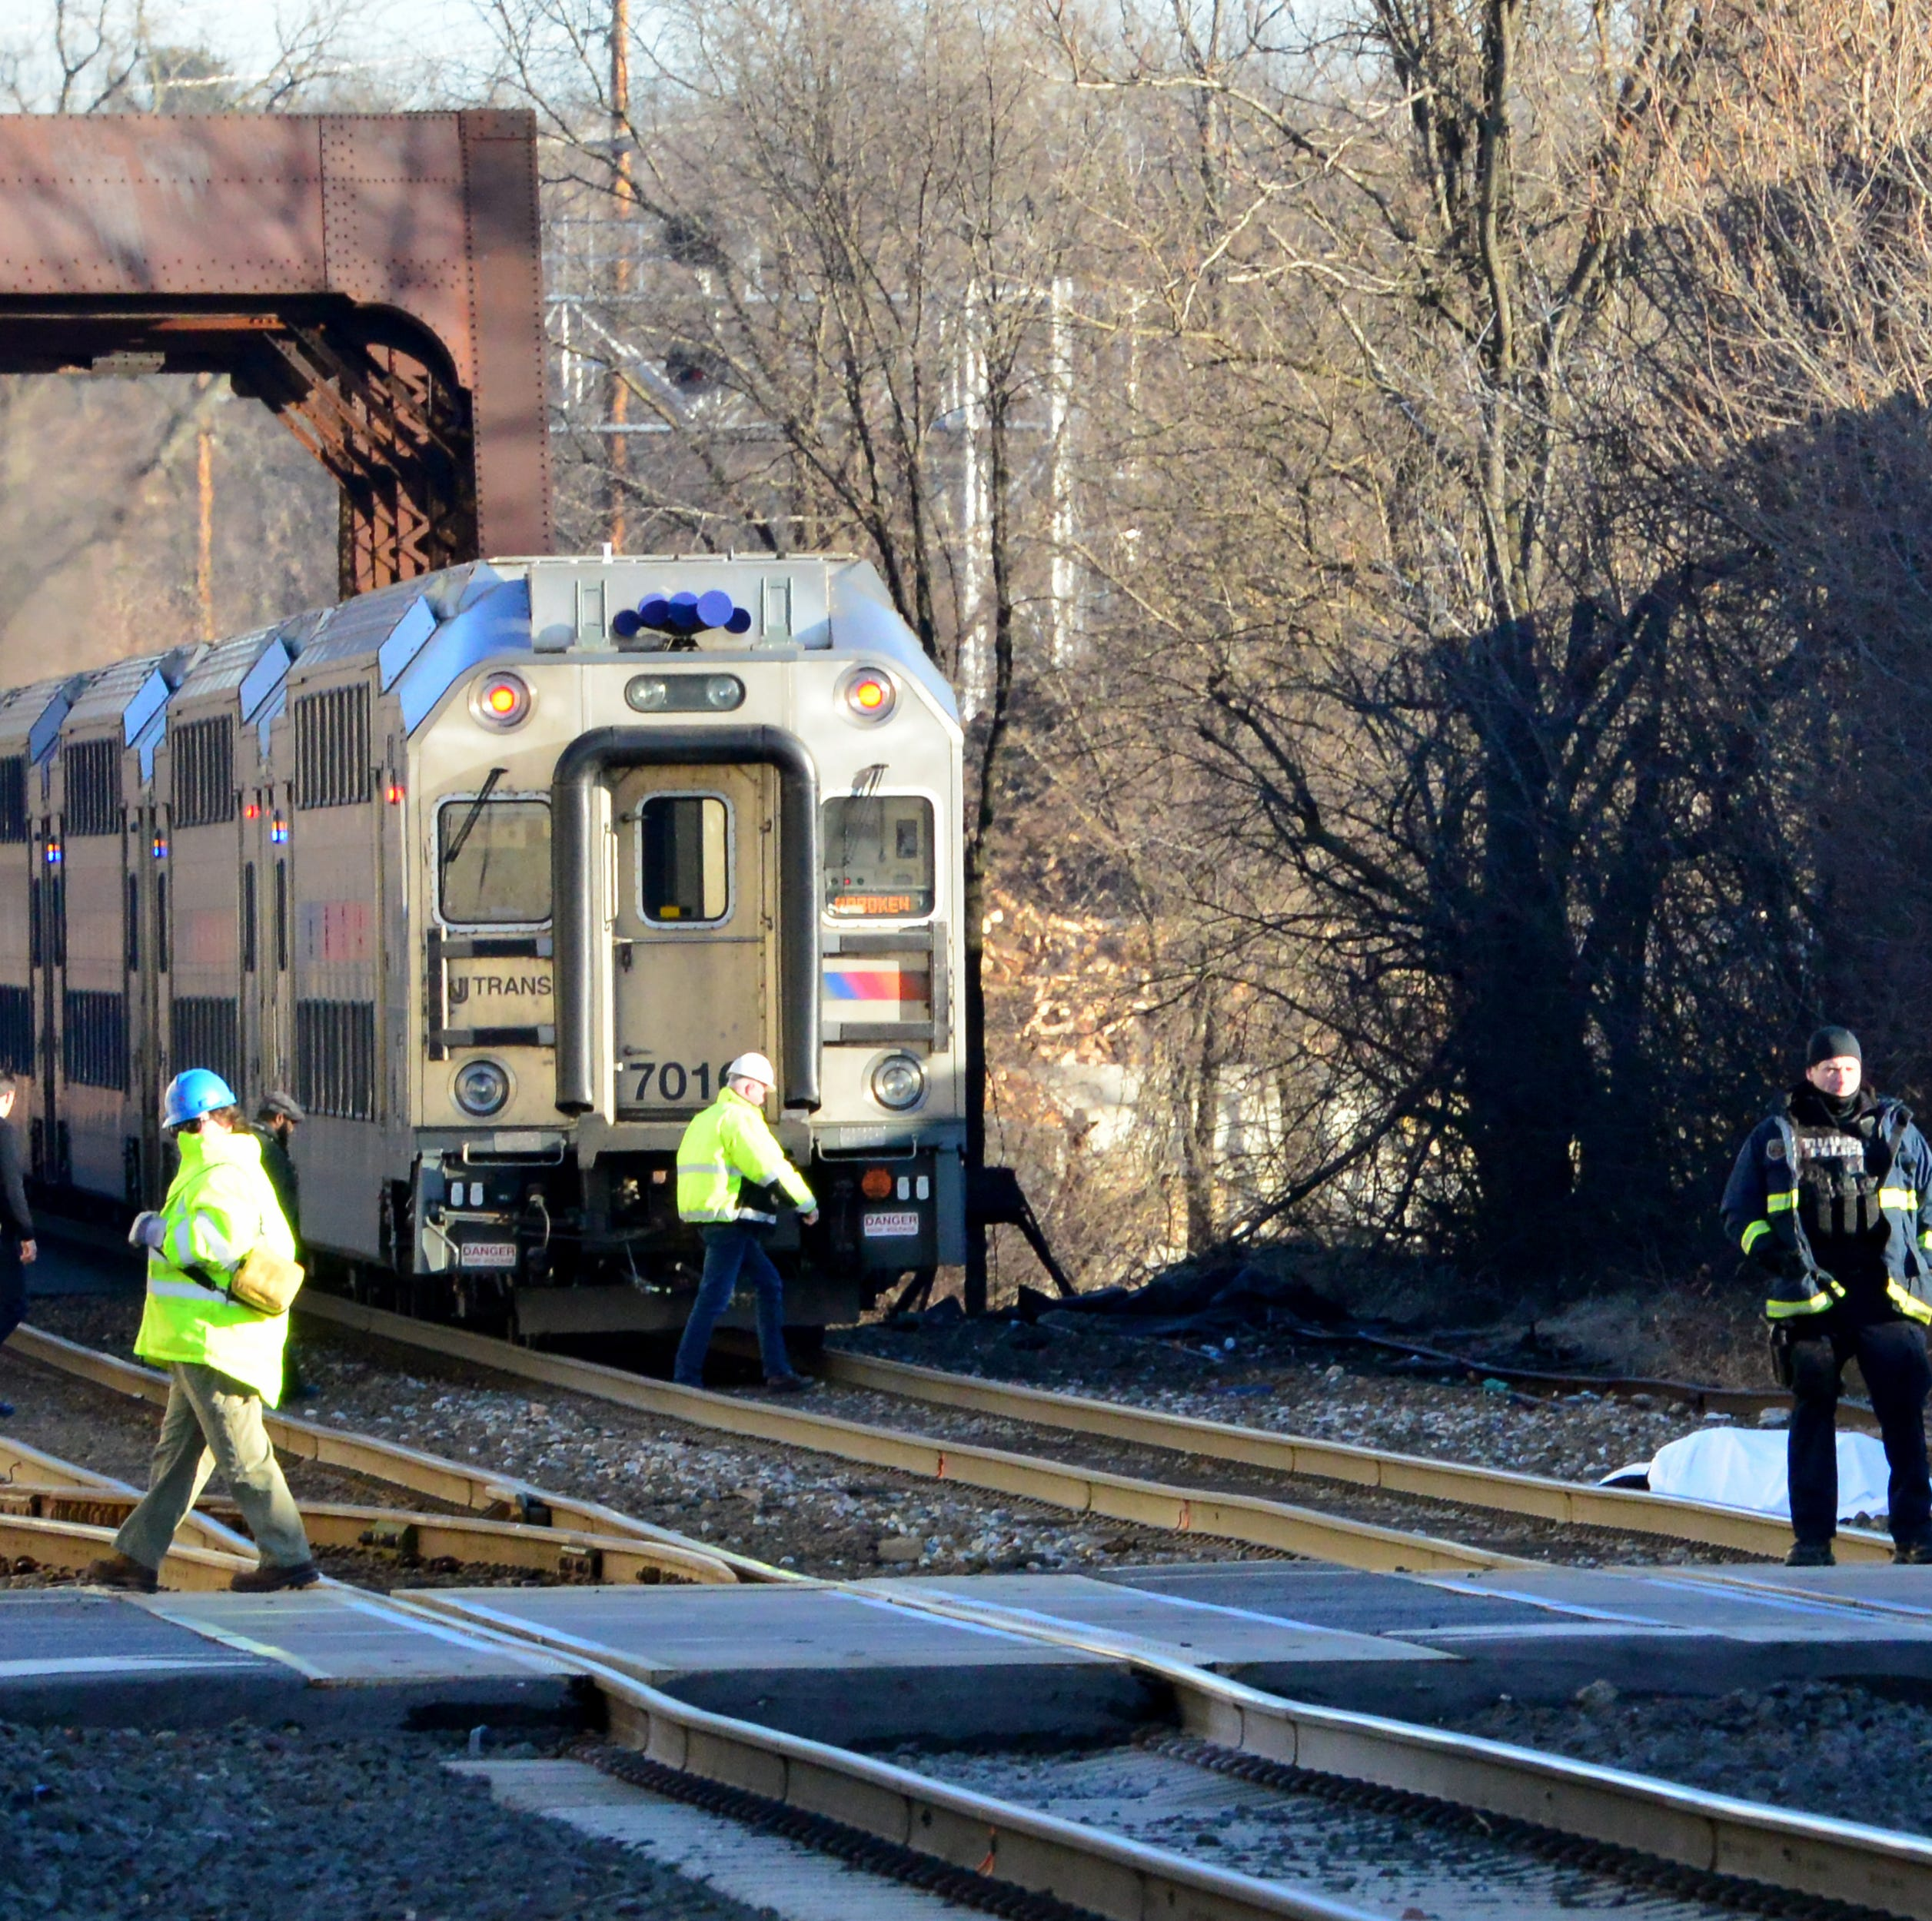 Person struck, killed by train in Paterson